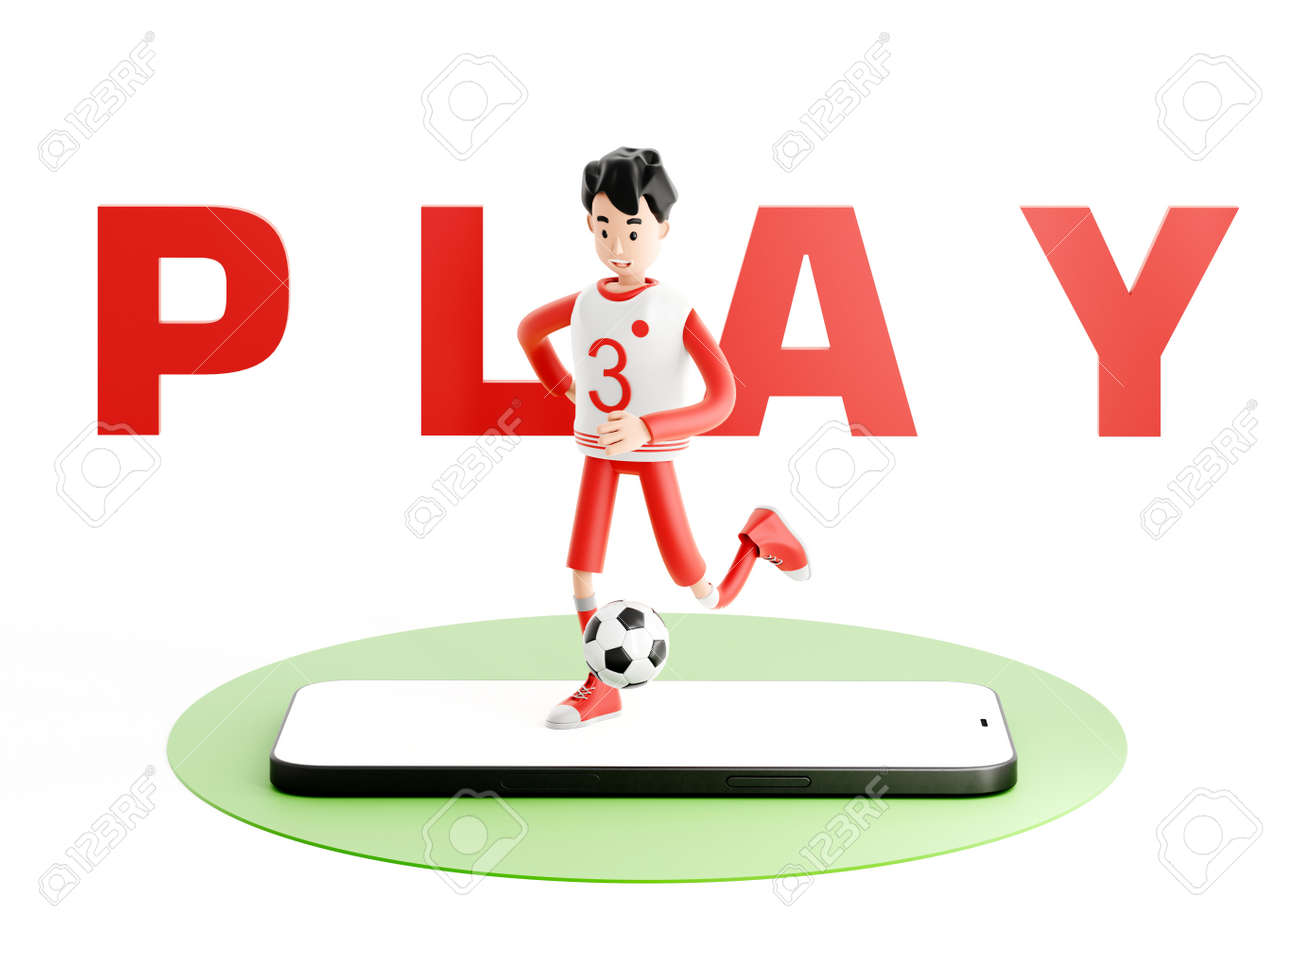 Cartoon character football or soccer player with a mobile phone - 171588131